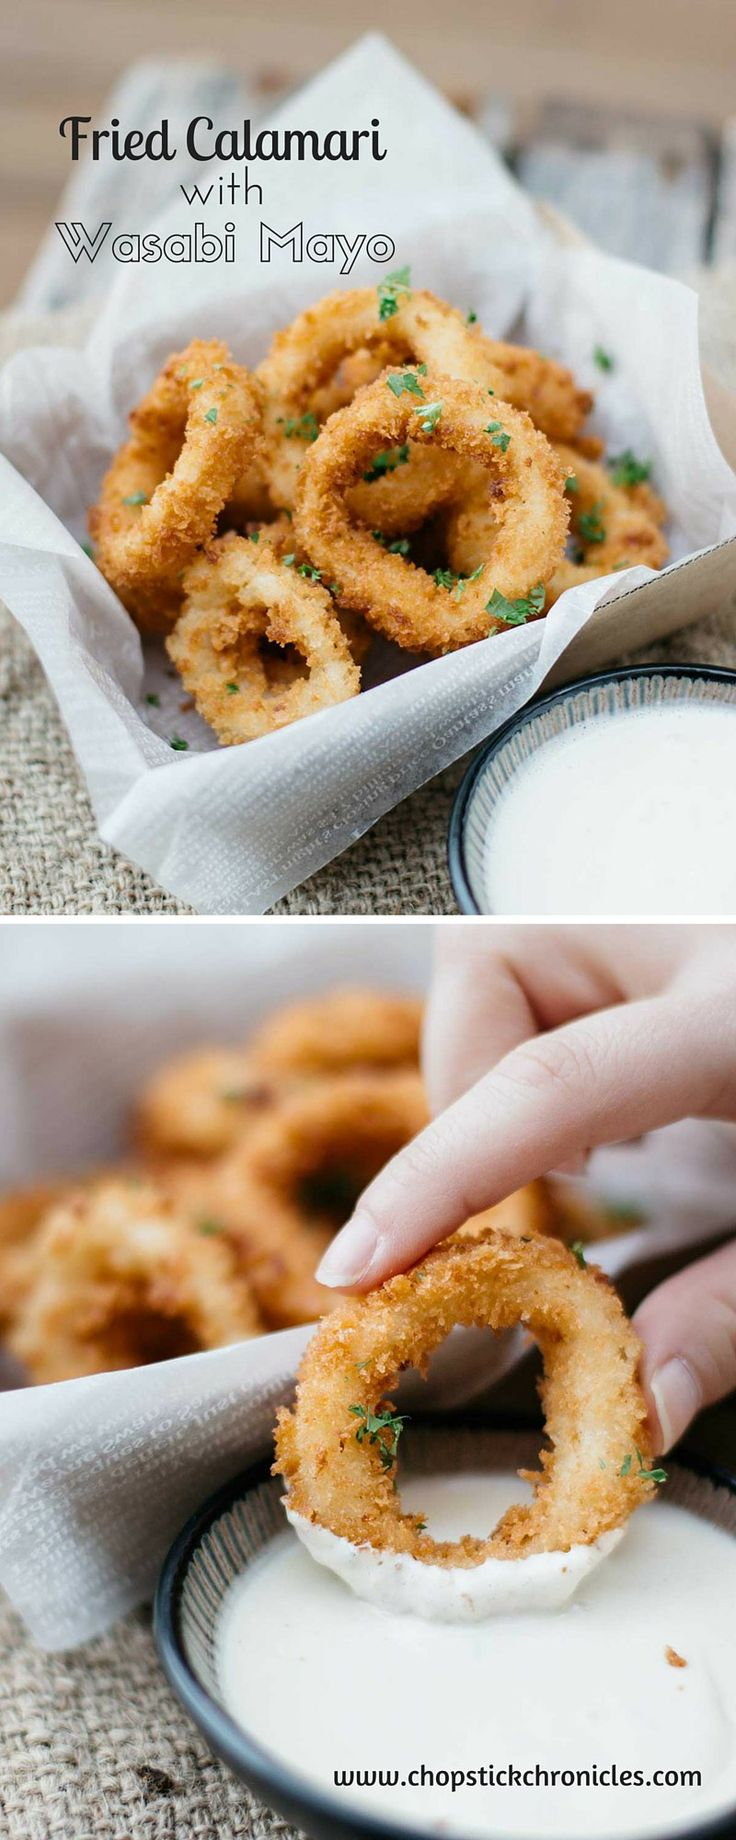 Fried-Calamari-with-Wasabi-Mayo